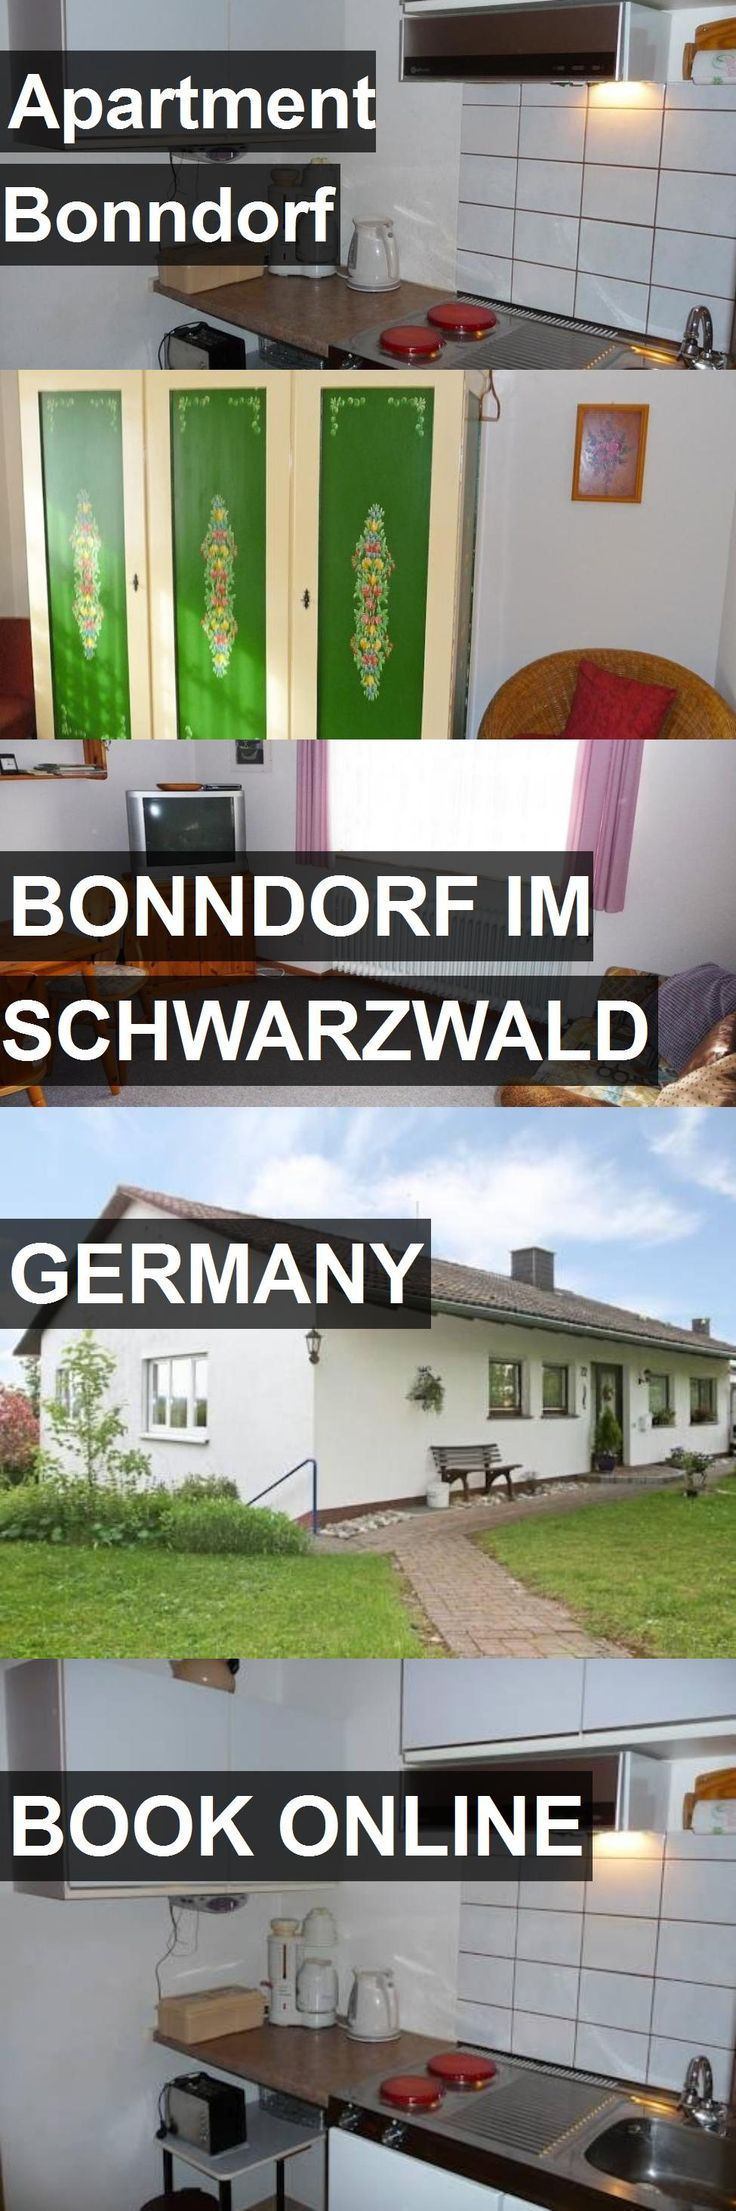 Hotel Apartment Bonndorf in Bonndorf im Schwarzwald, Germany. For more information, photos, reviews and best prices please follow the link. #Germany #BonndorfimSchwarzwald #ApartmentBonndorf #hotel #travel #vacation